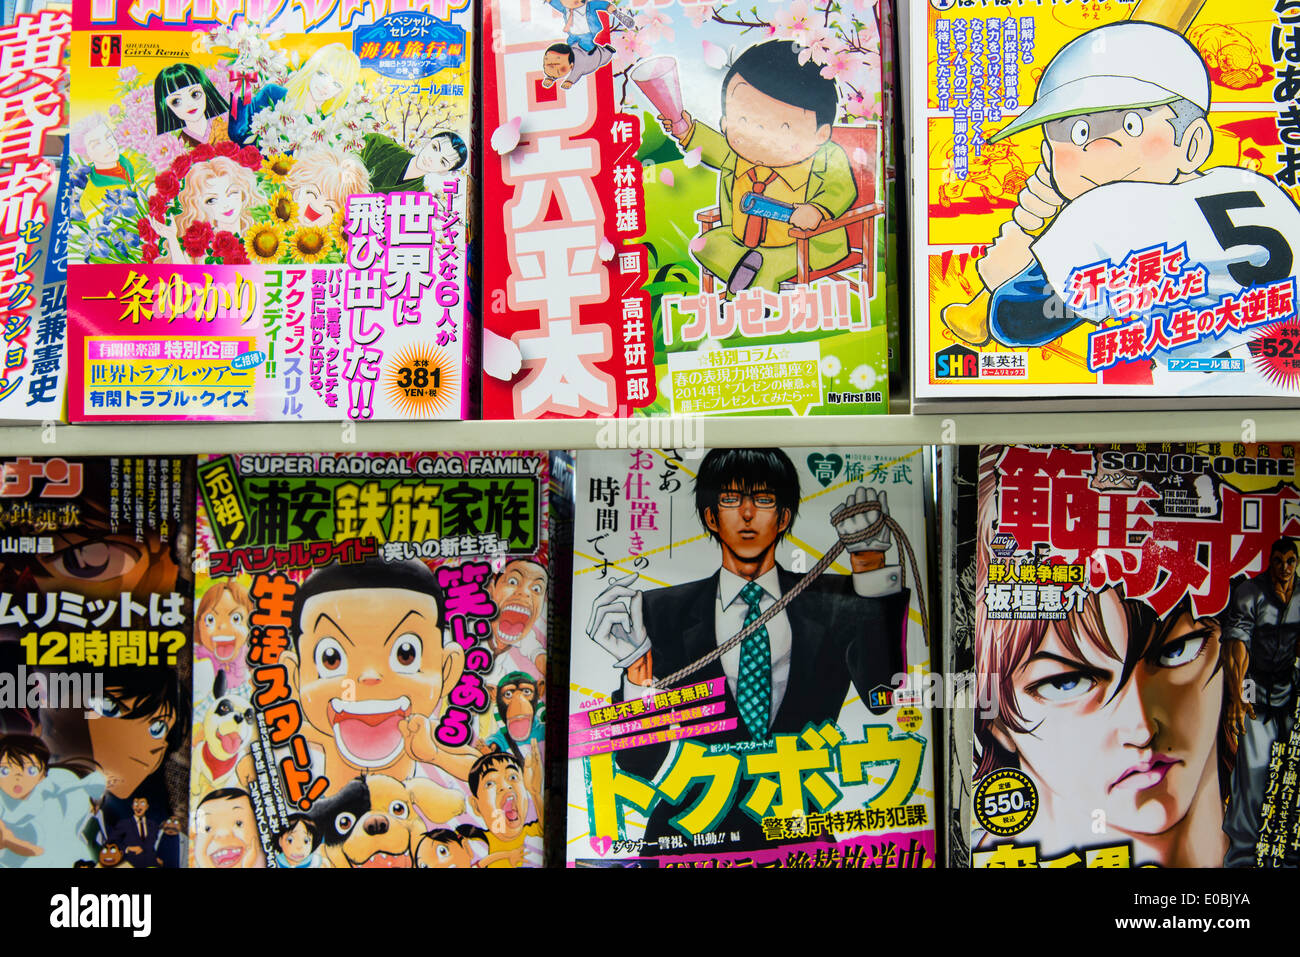 Manga comics magazines and publications at newsagent's, Tokyo, Japan - Stock Image